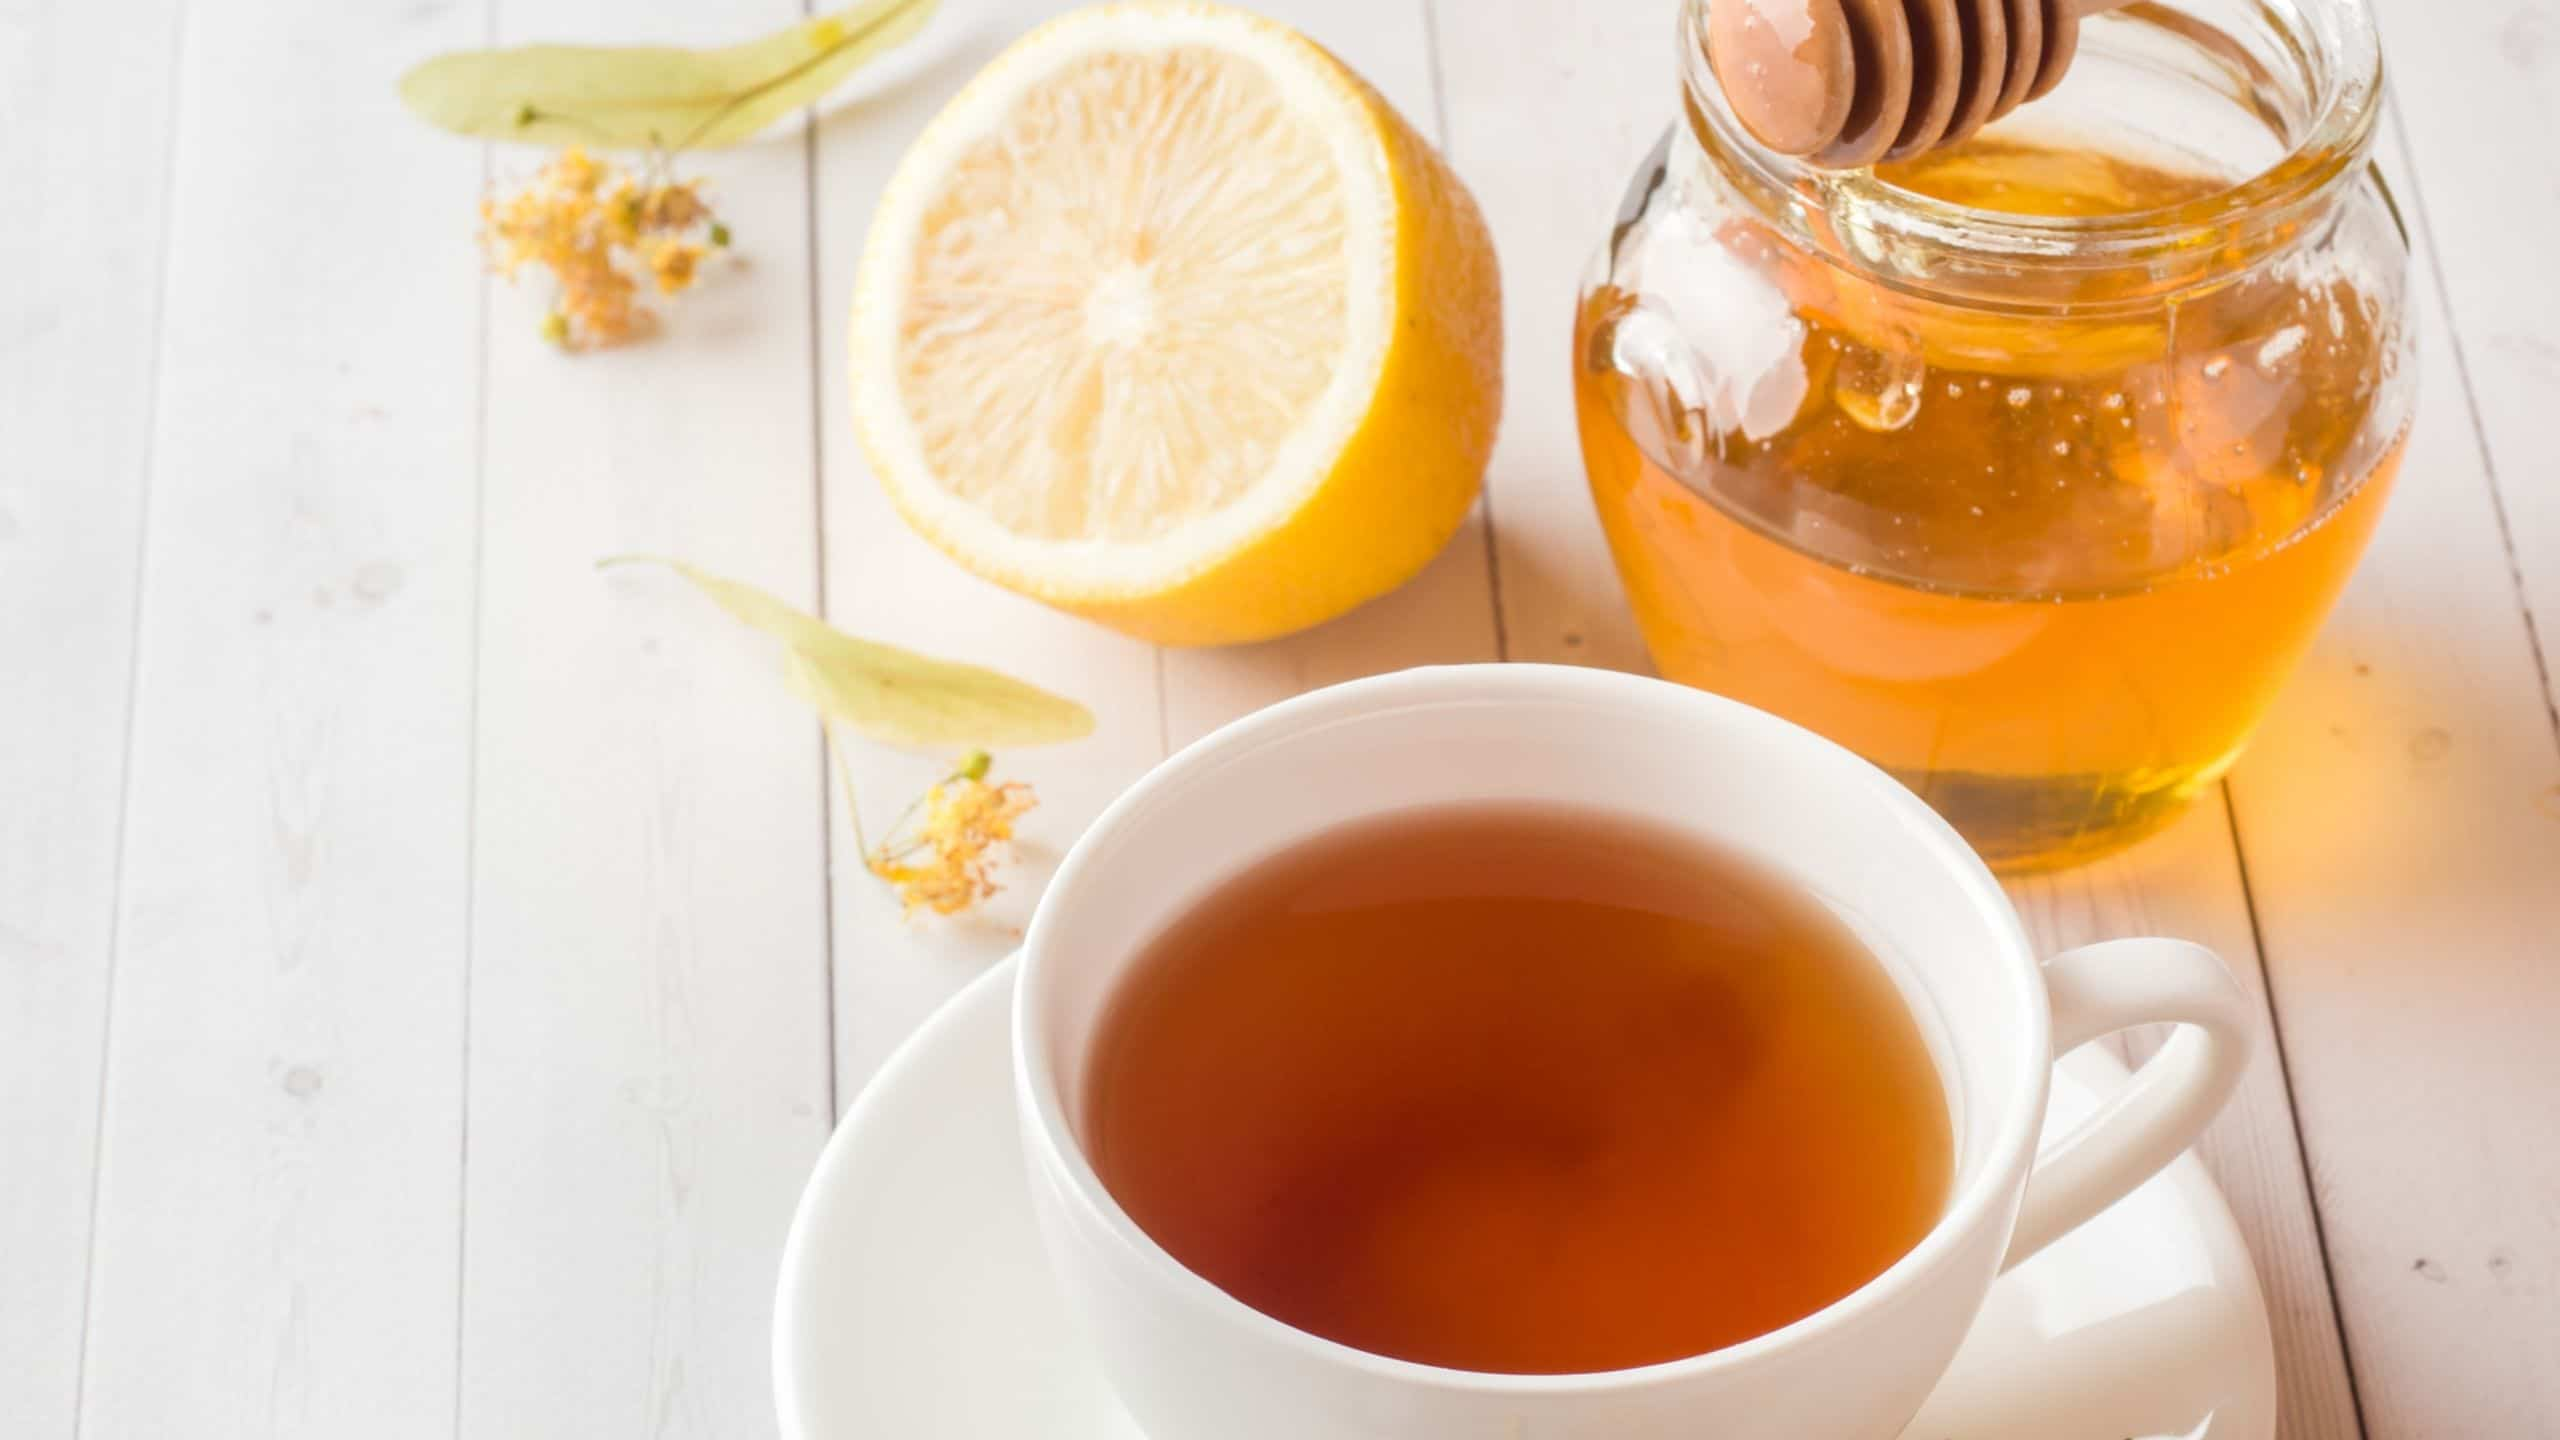 Lemon and Honey Benefits for Health, Skin and Hair